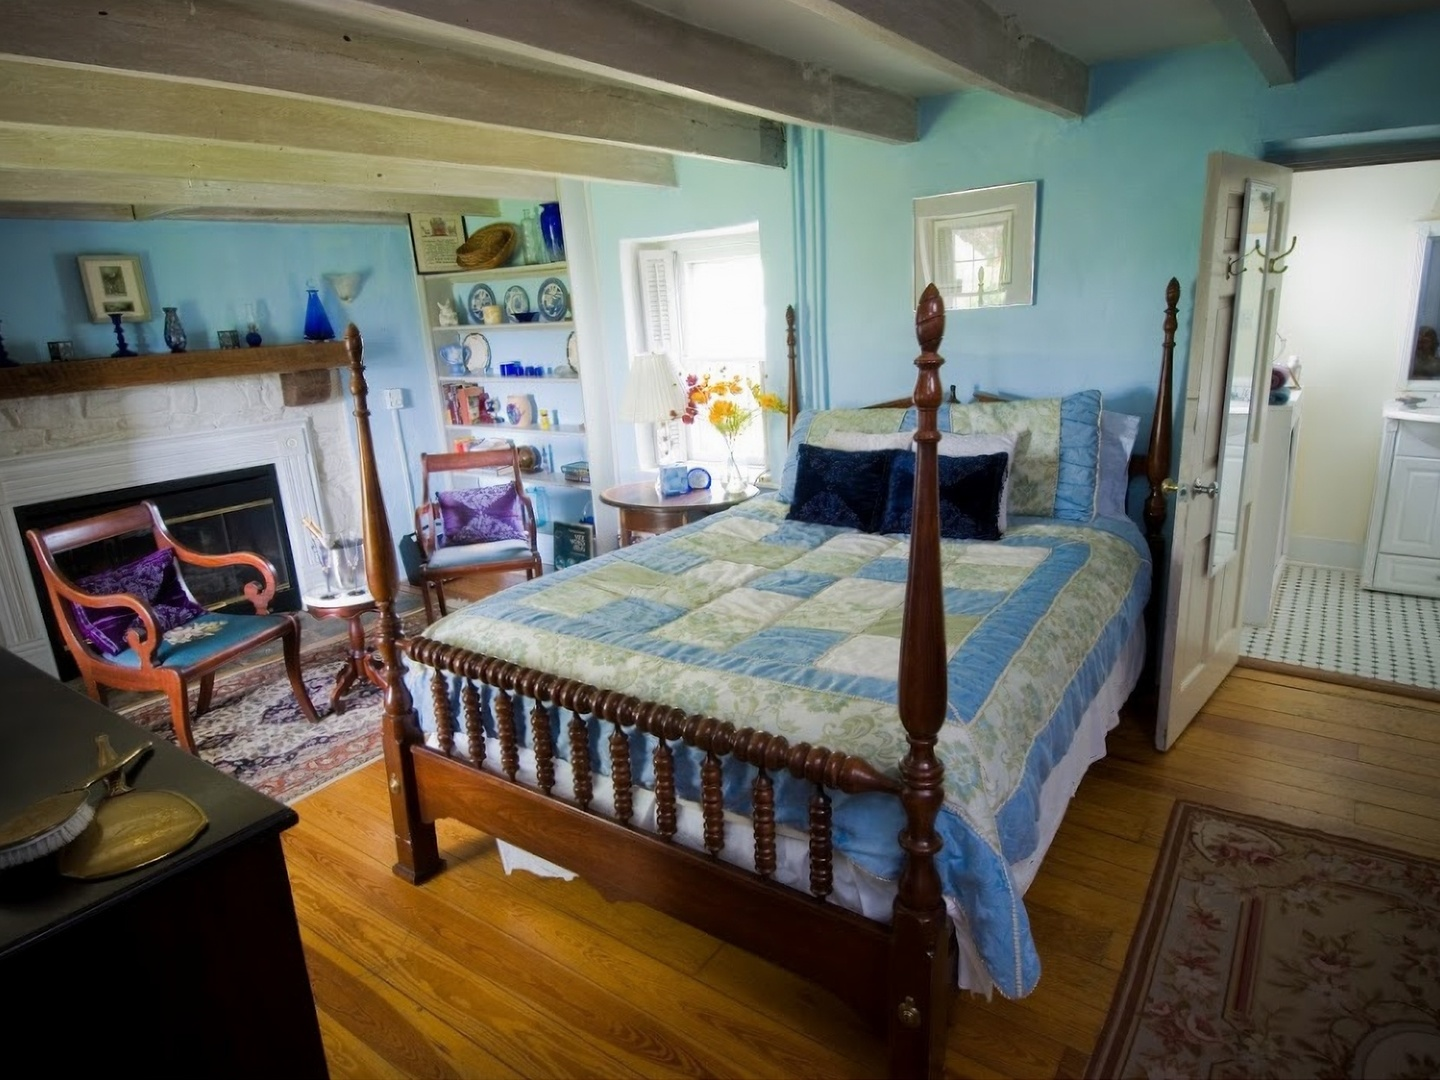 A bedroom with a bed and desk in a room at Briar Patch Bed & Breakfast Inn.